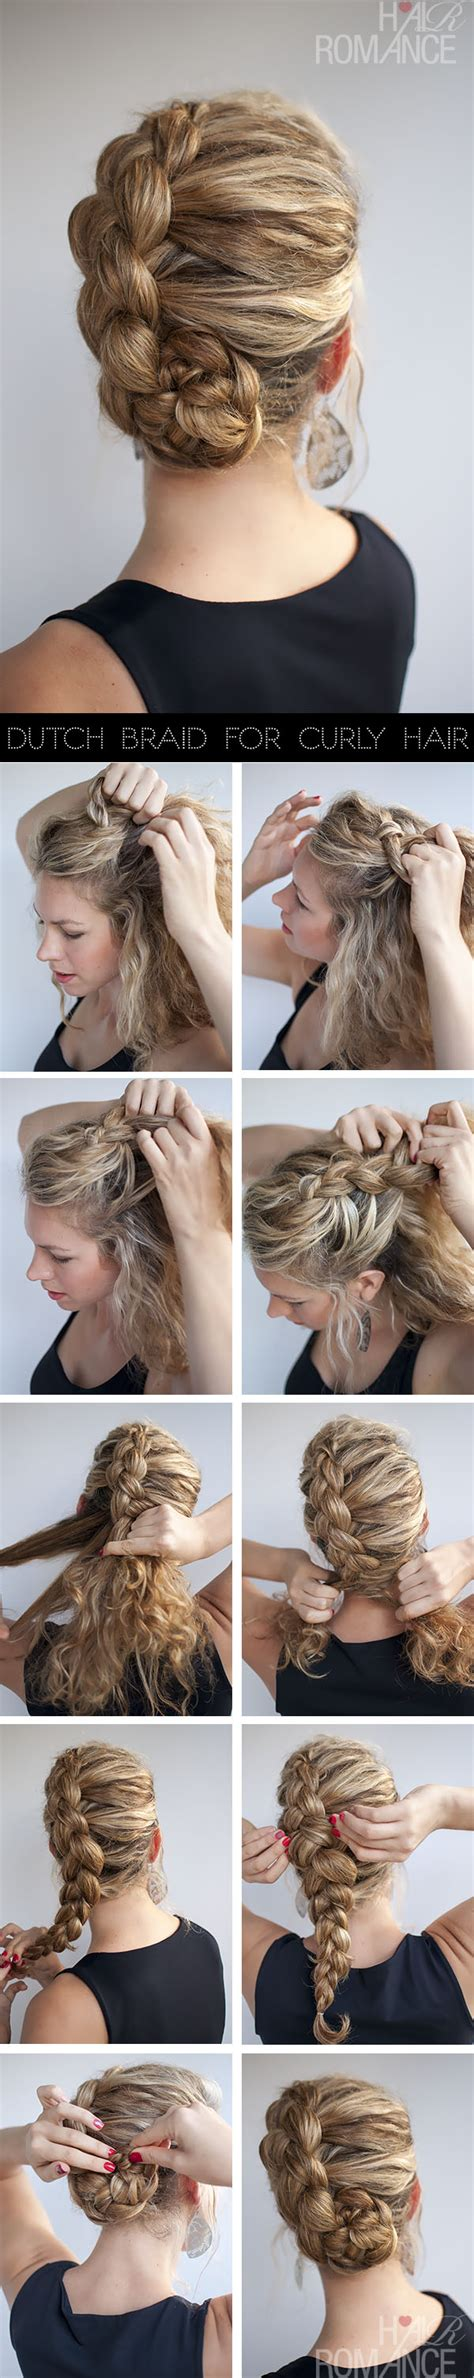 hairstyles curly hair steps hairstyle for curly hair dutch braid tutorial hair romance